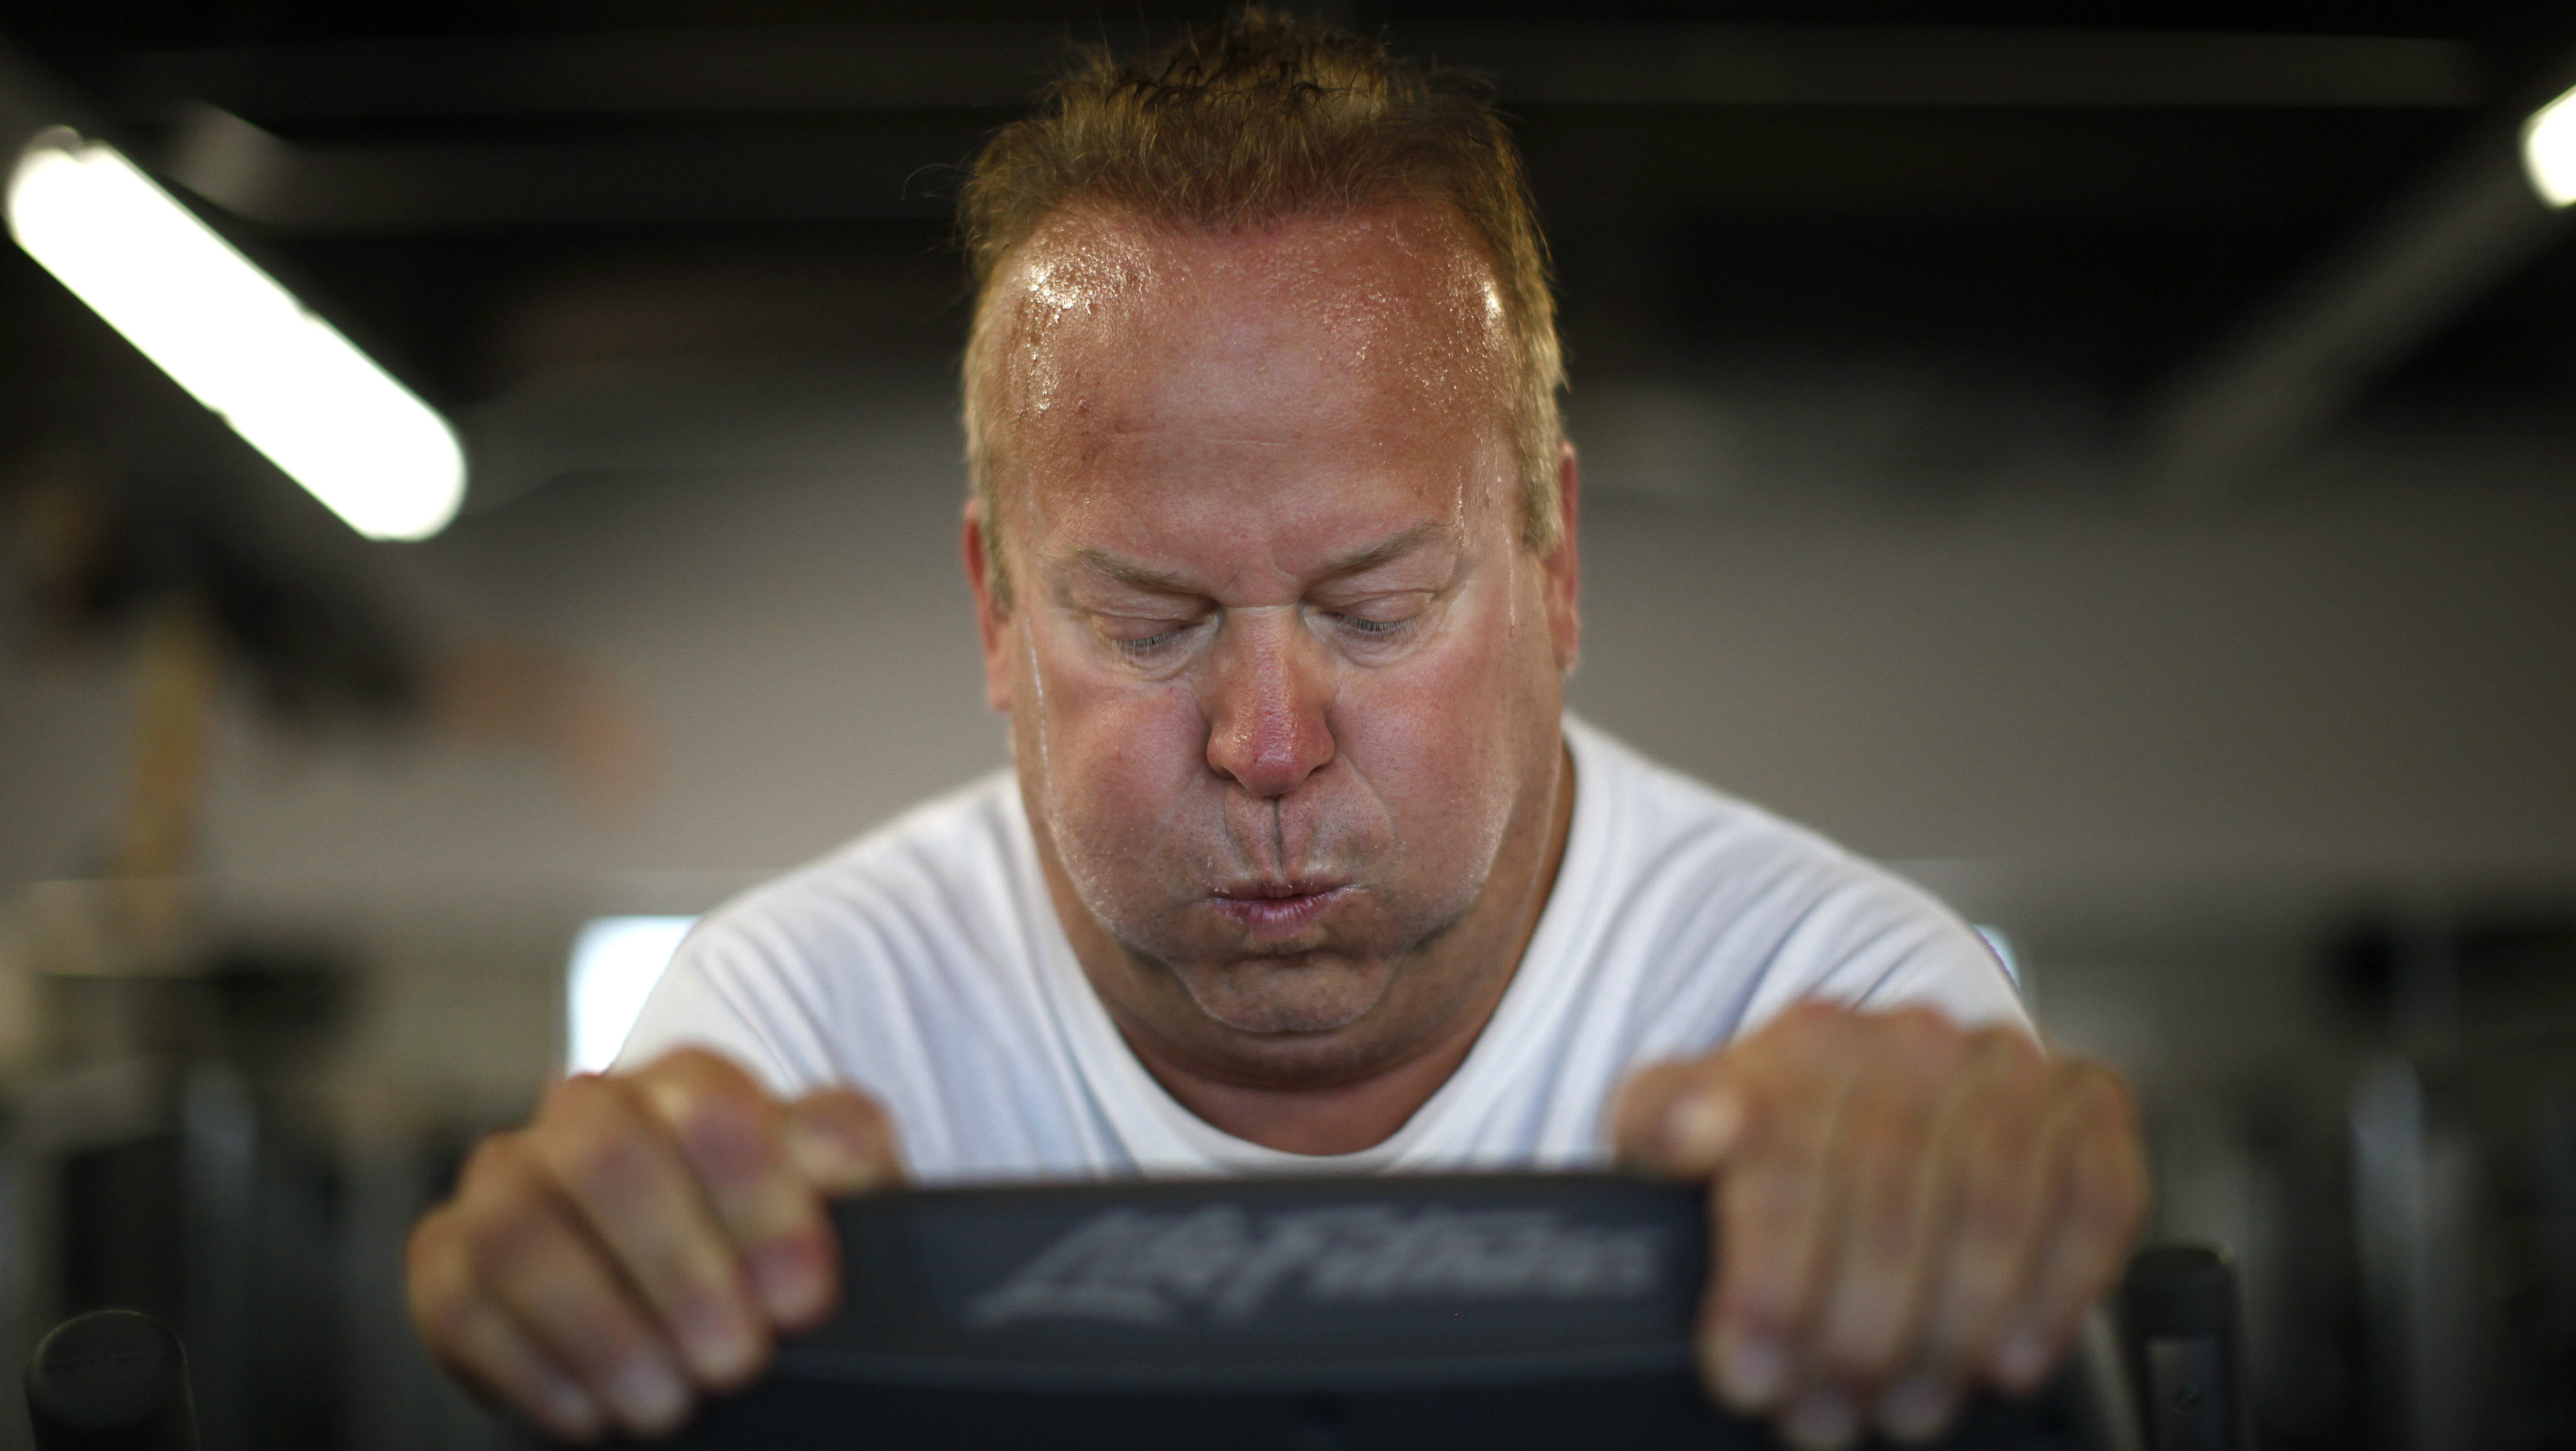 """Guests Richard Walker works out on an elliptical machine in the """"mountain"""" fitness class at the Biggest Loser Resort in Ivins, Utah September 6, 2010. Guests at the resort affiliated with the popular reality television show are restricted to a daily 1,200 calorie diet and exercise 6 to 7 hours a day. REUTERS/Rick Wilking"""